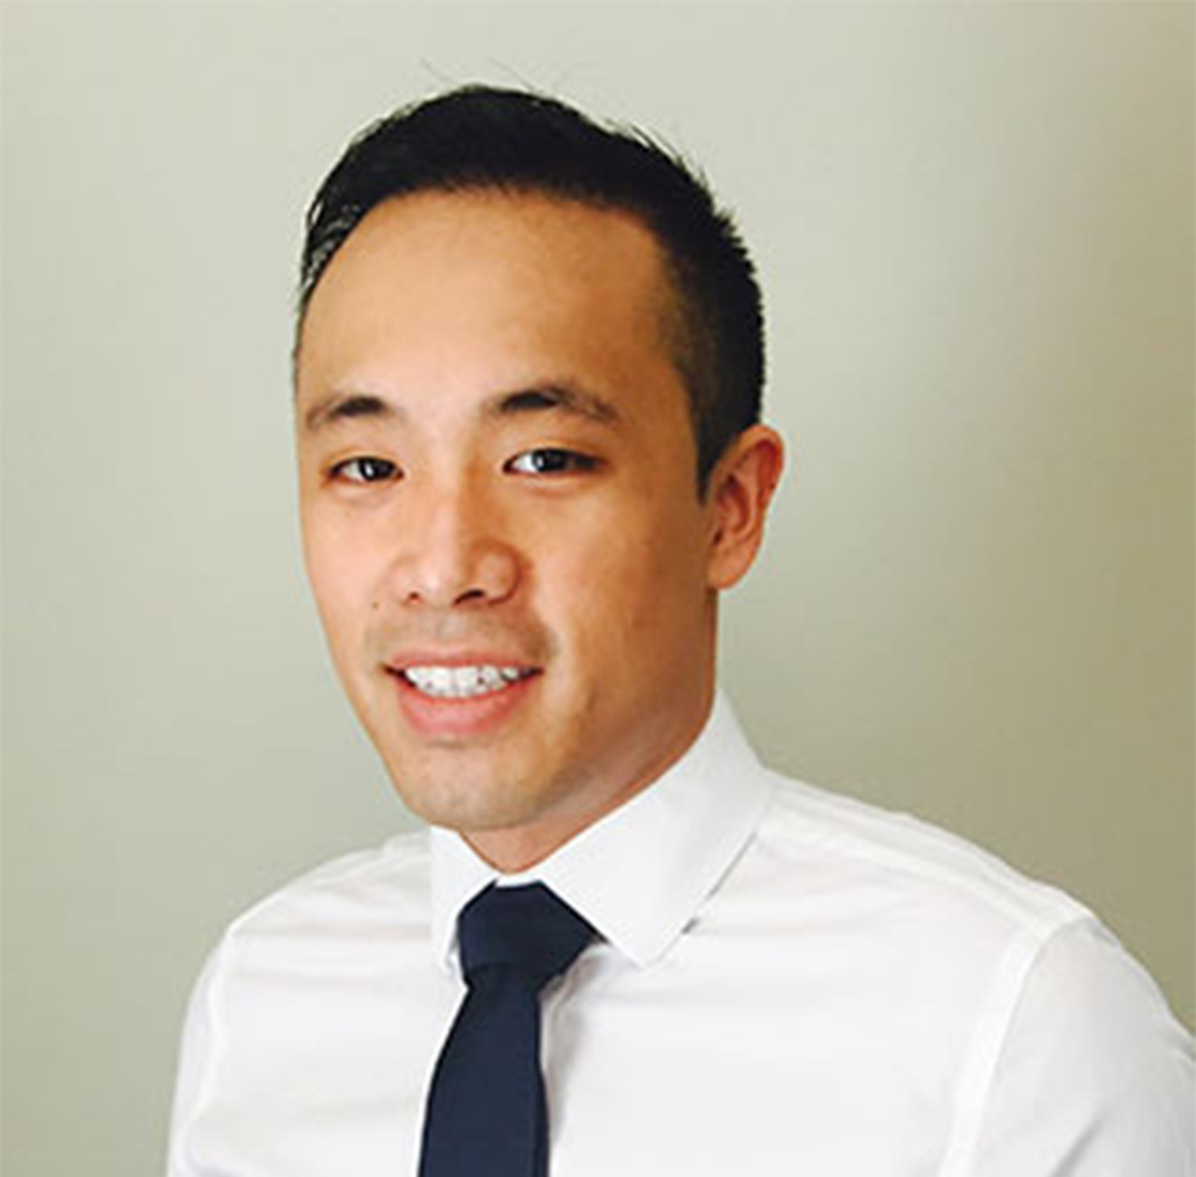 Portrait of Brian Trieu, a Calgary based optometrist